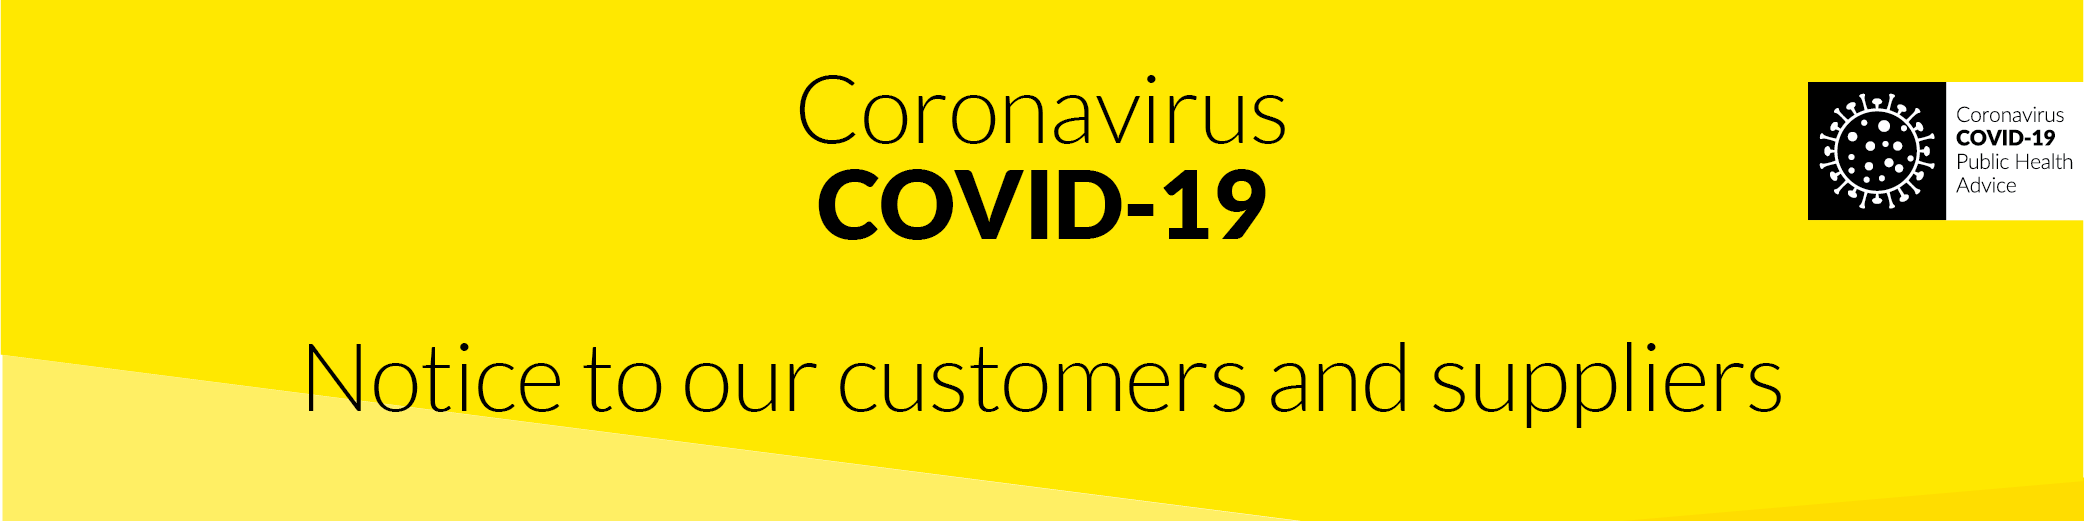 Covid-19 Notice to Customers and Suppliers